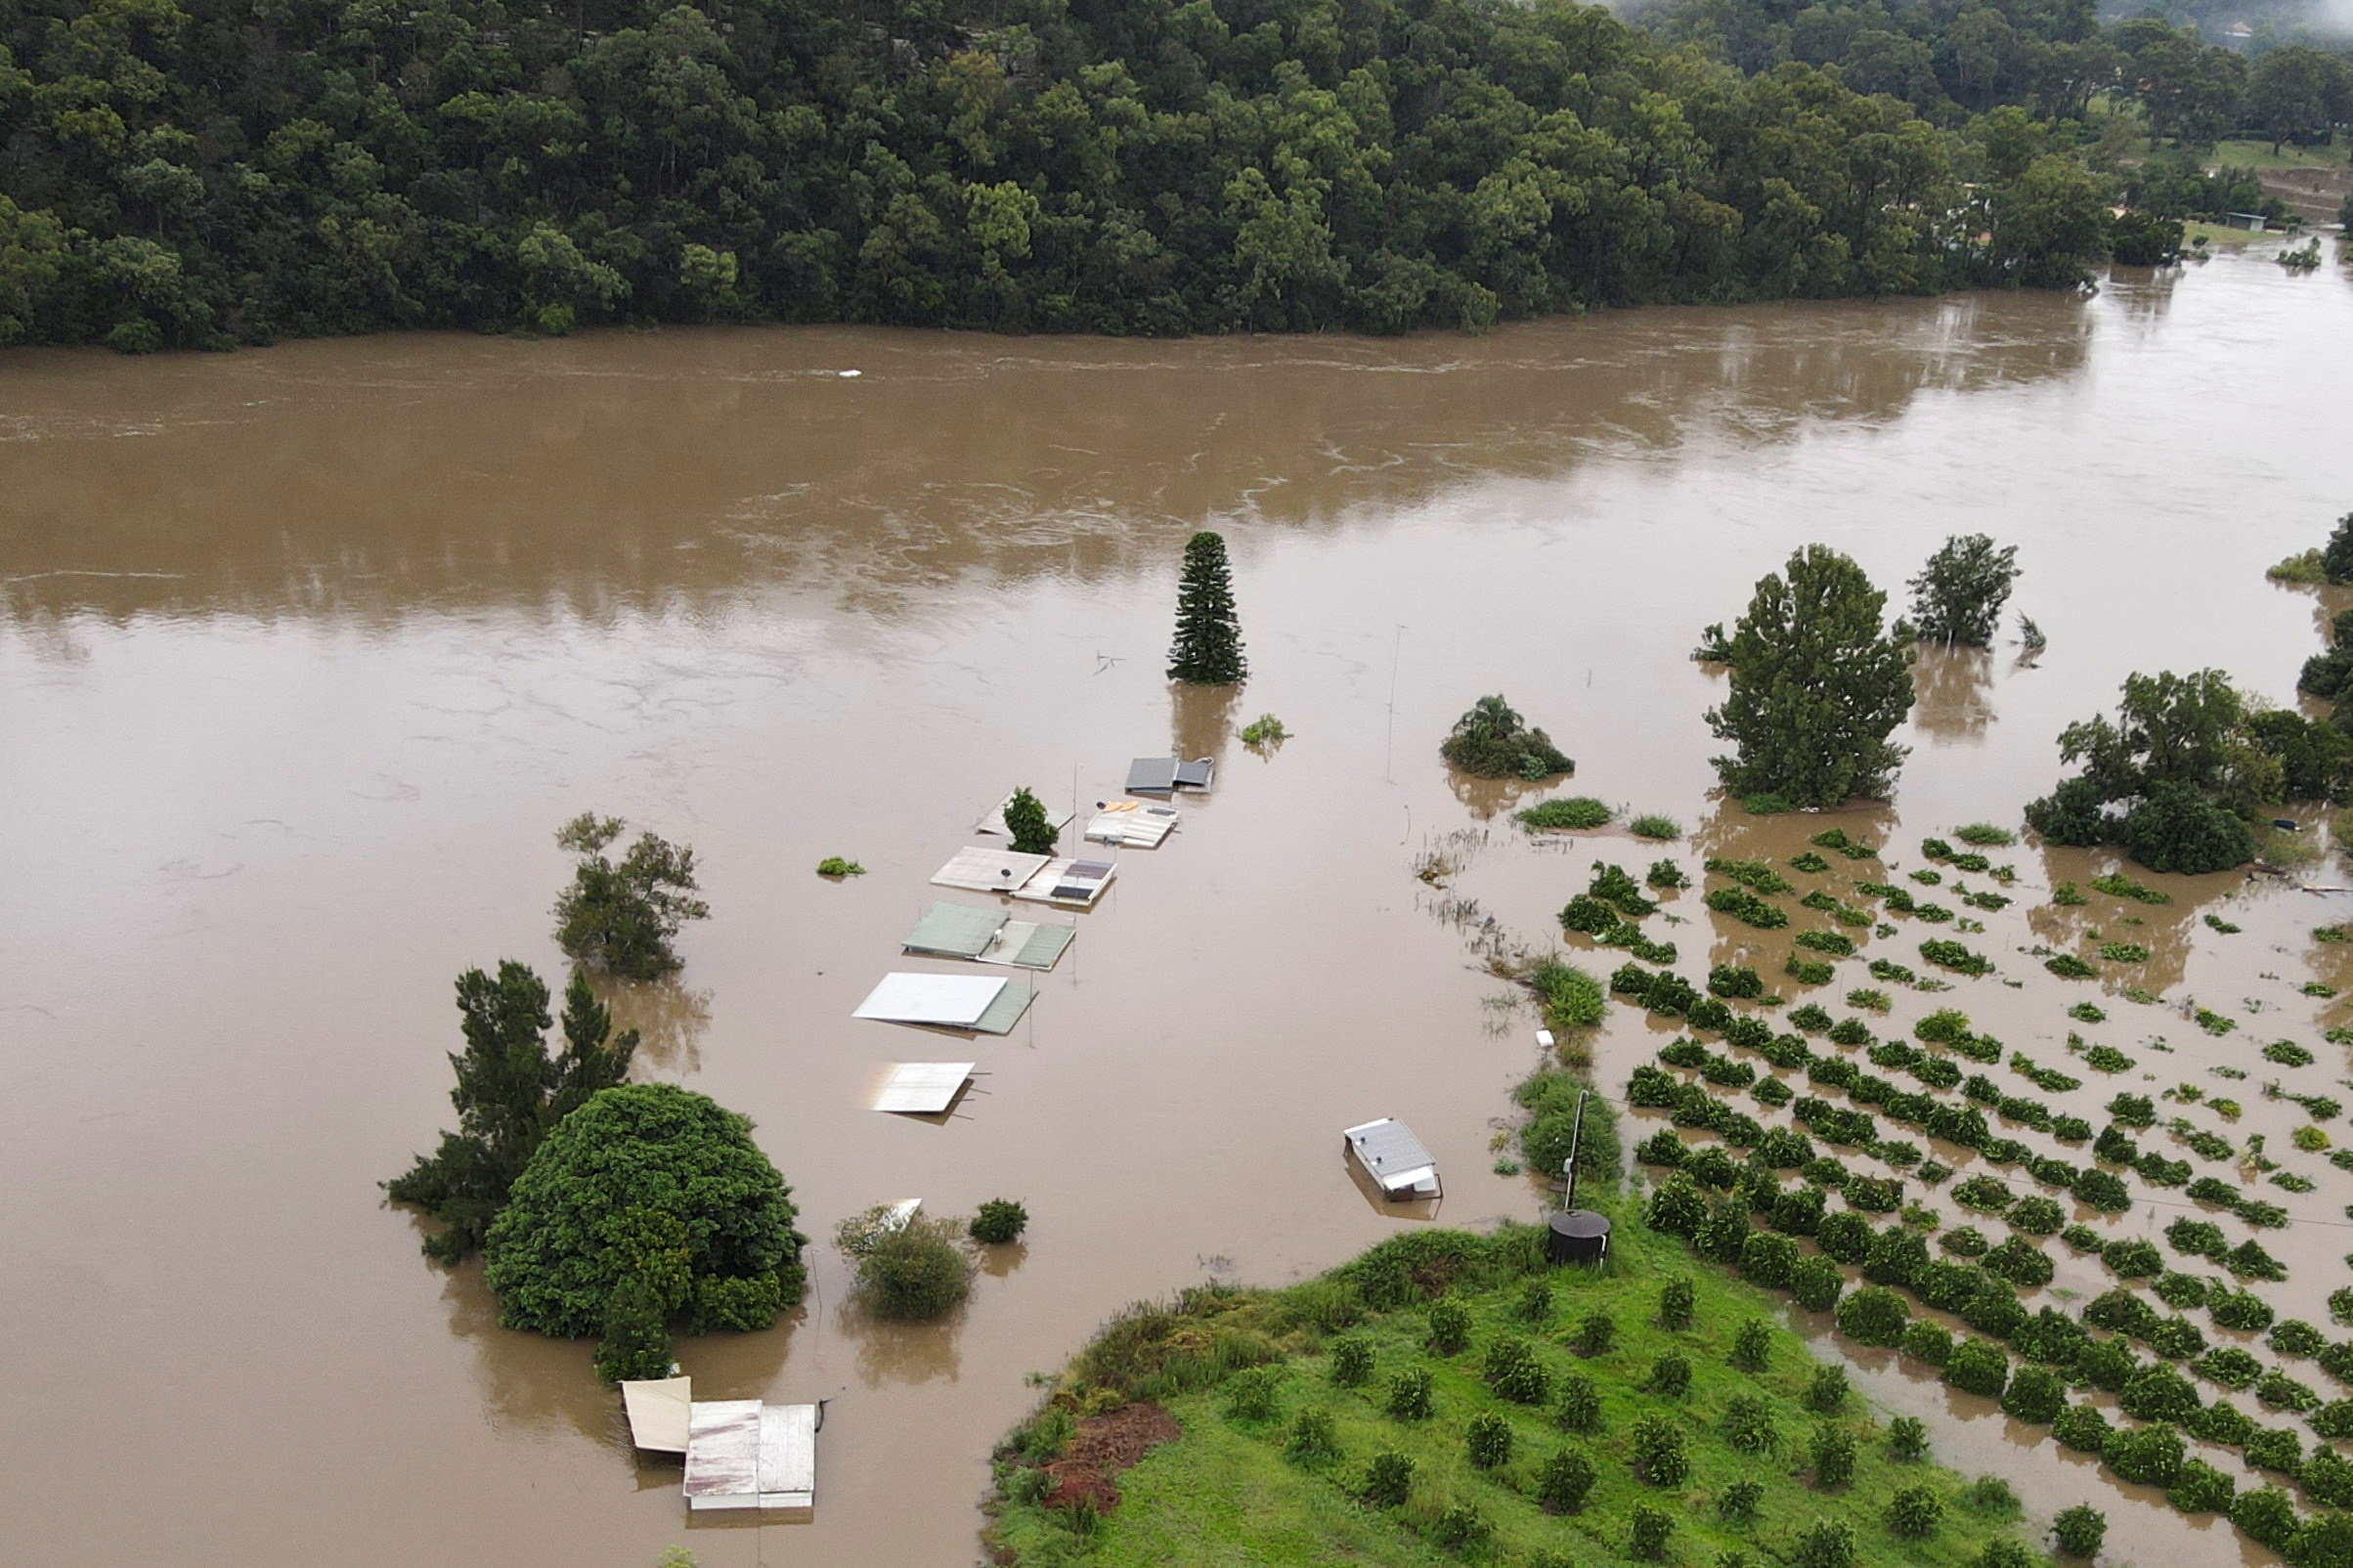 A flooded farm with plants, structures underwater